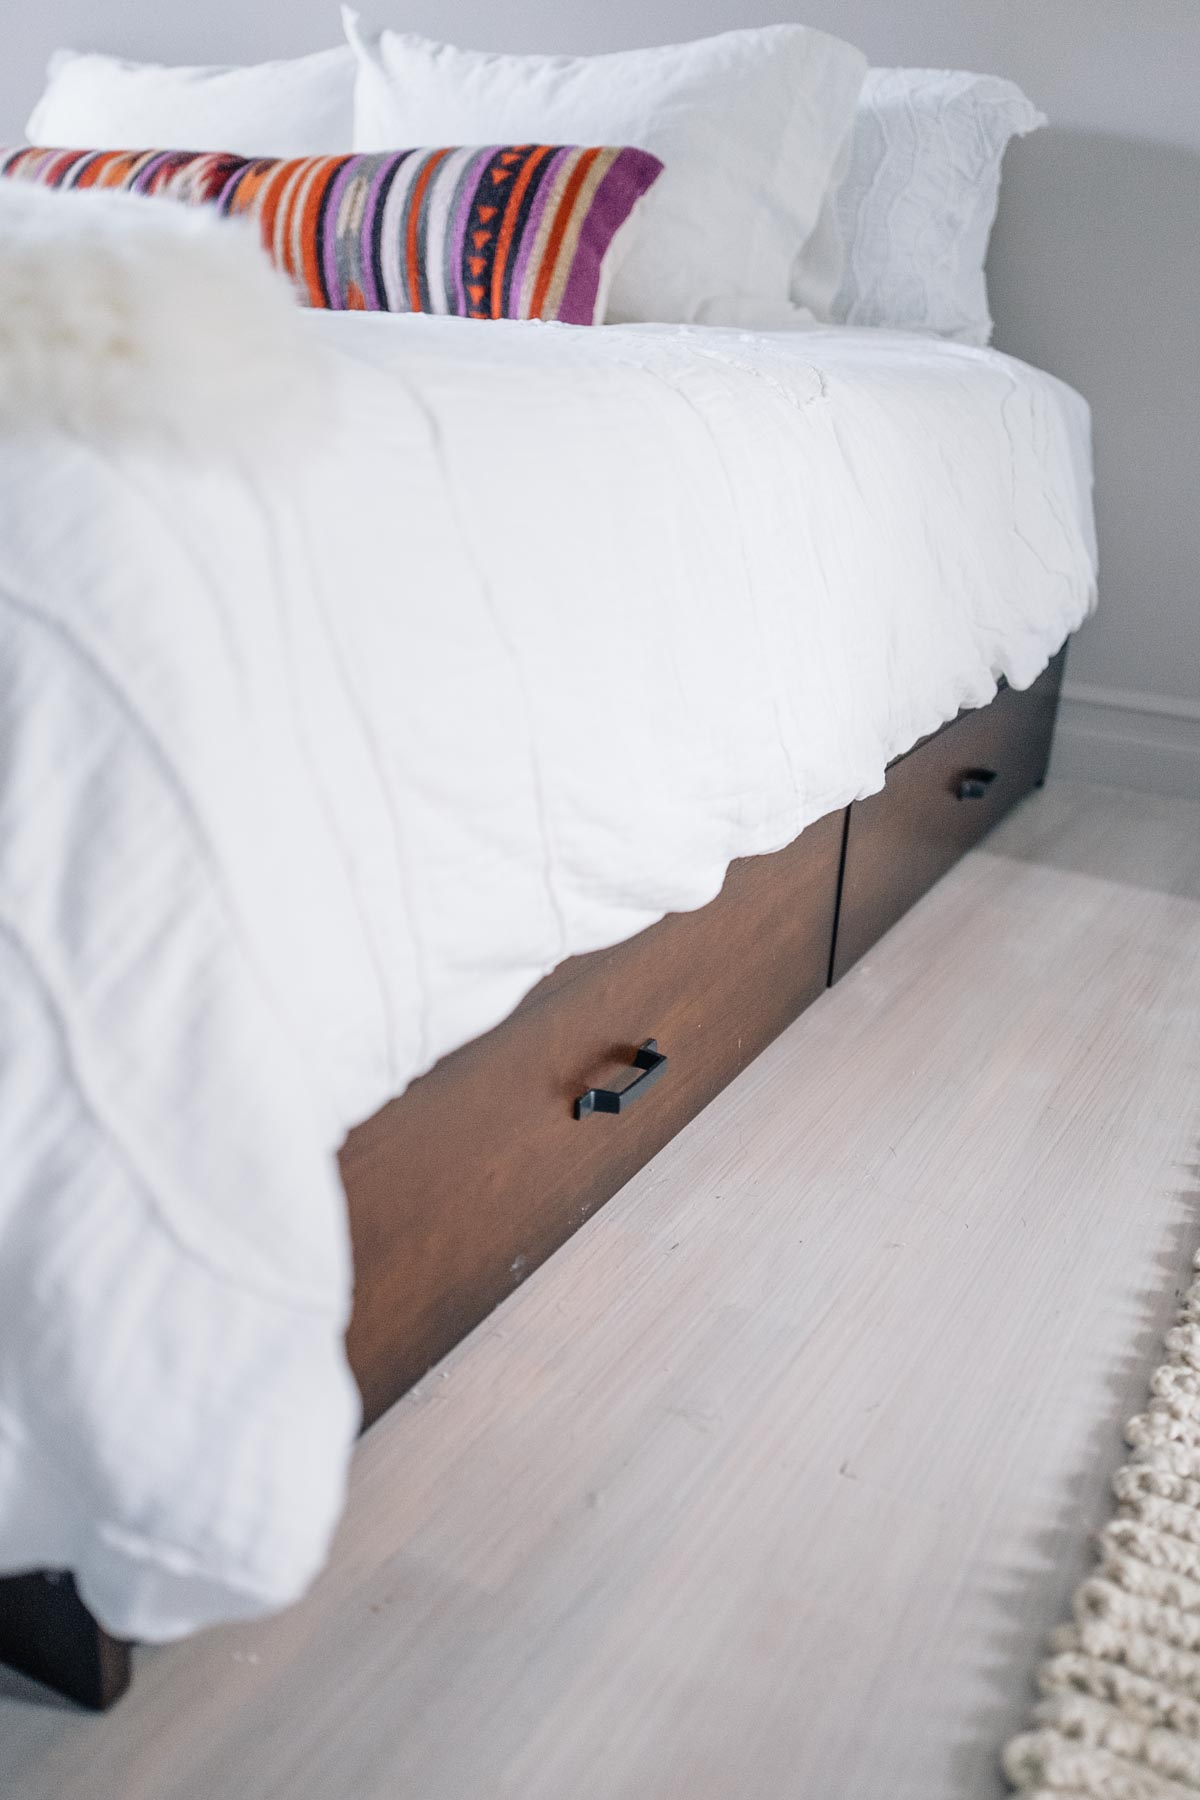 Jess Ann Kirby uses the Raymour & Flanigan under bed storage drawers for extra space in a bedroom